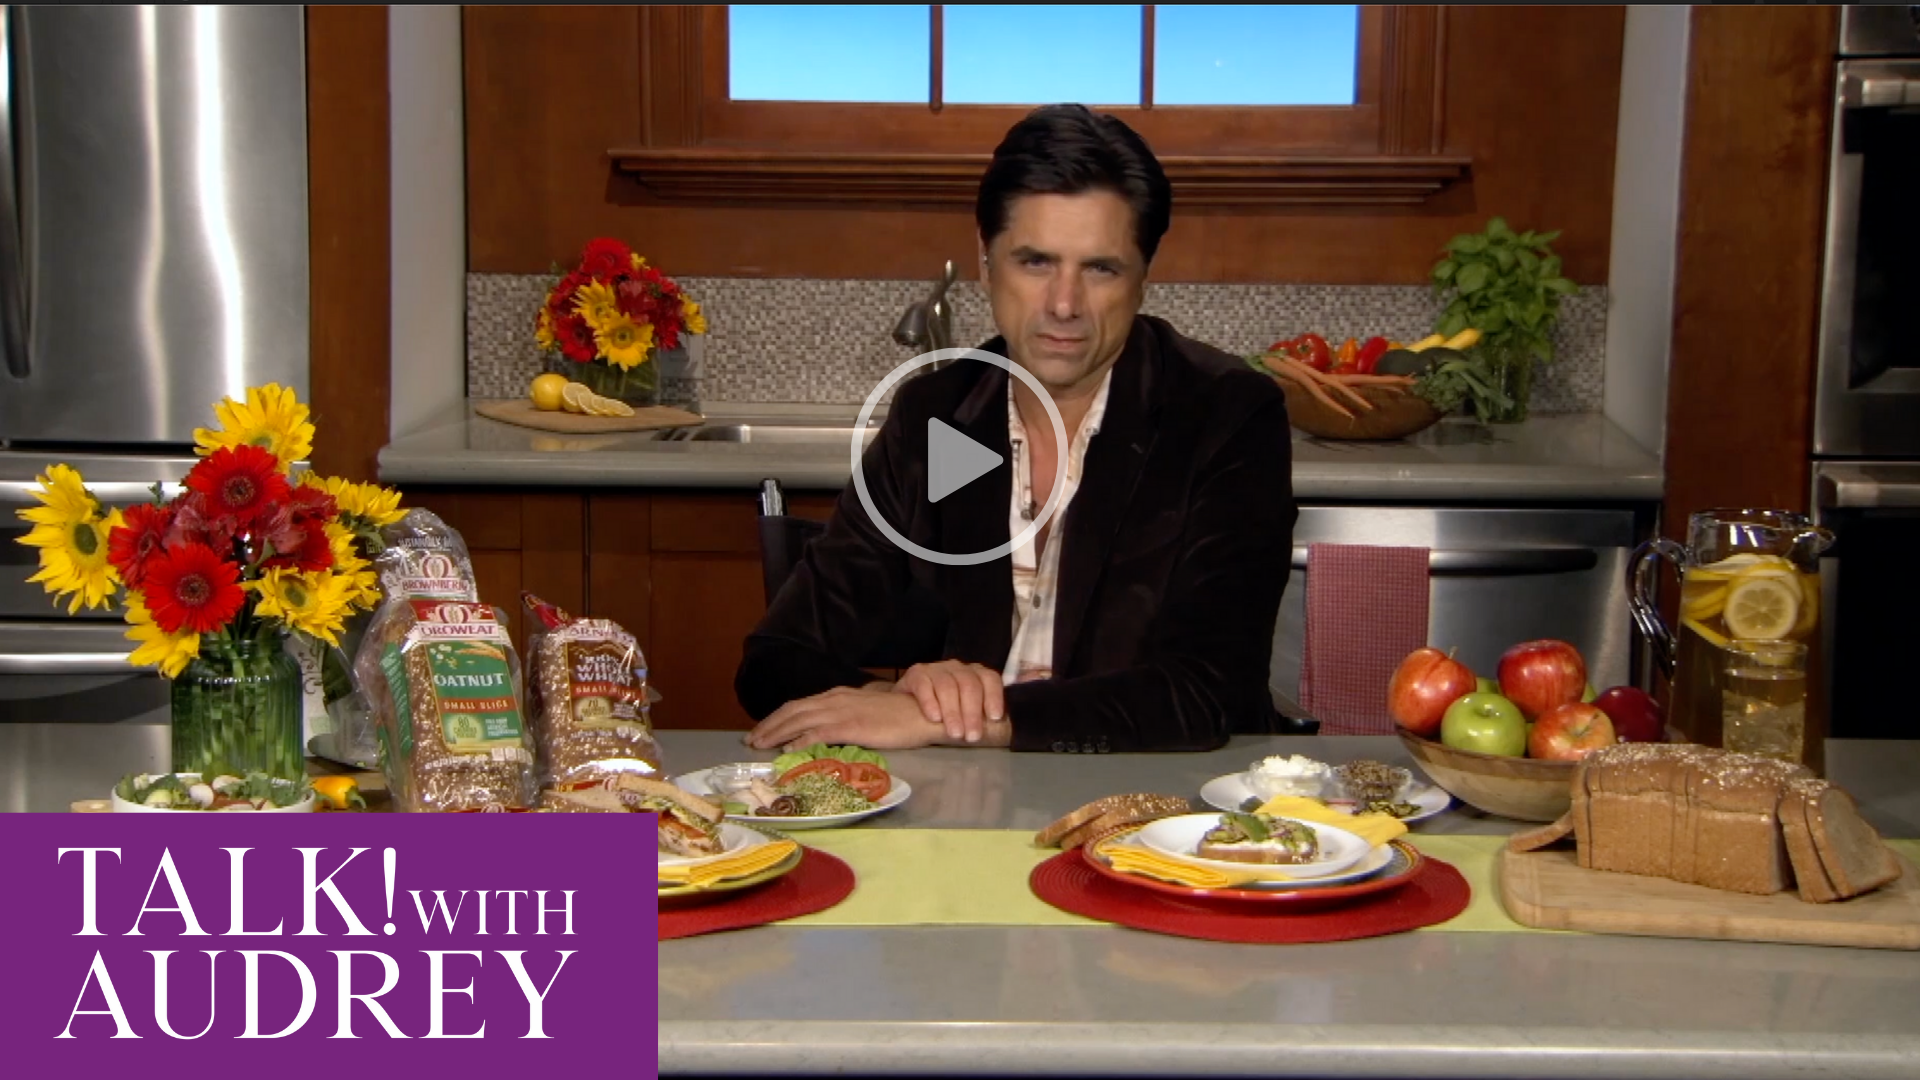 Emmy Award Nominated Actor John Stamos Shares How He Manages to Prioritize Health and Good Nutrition